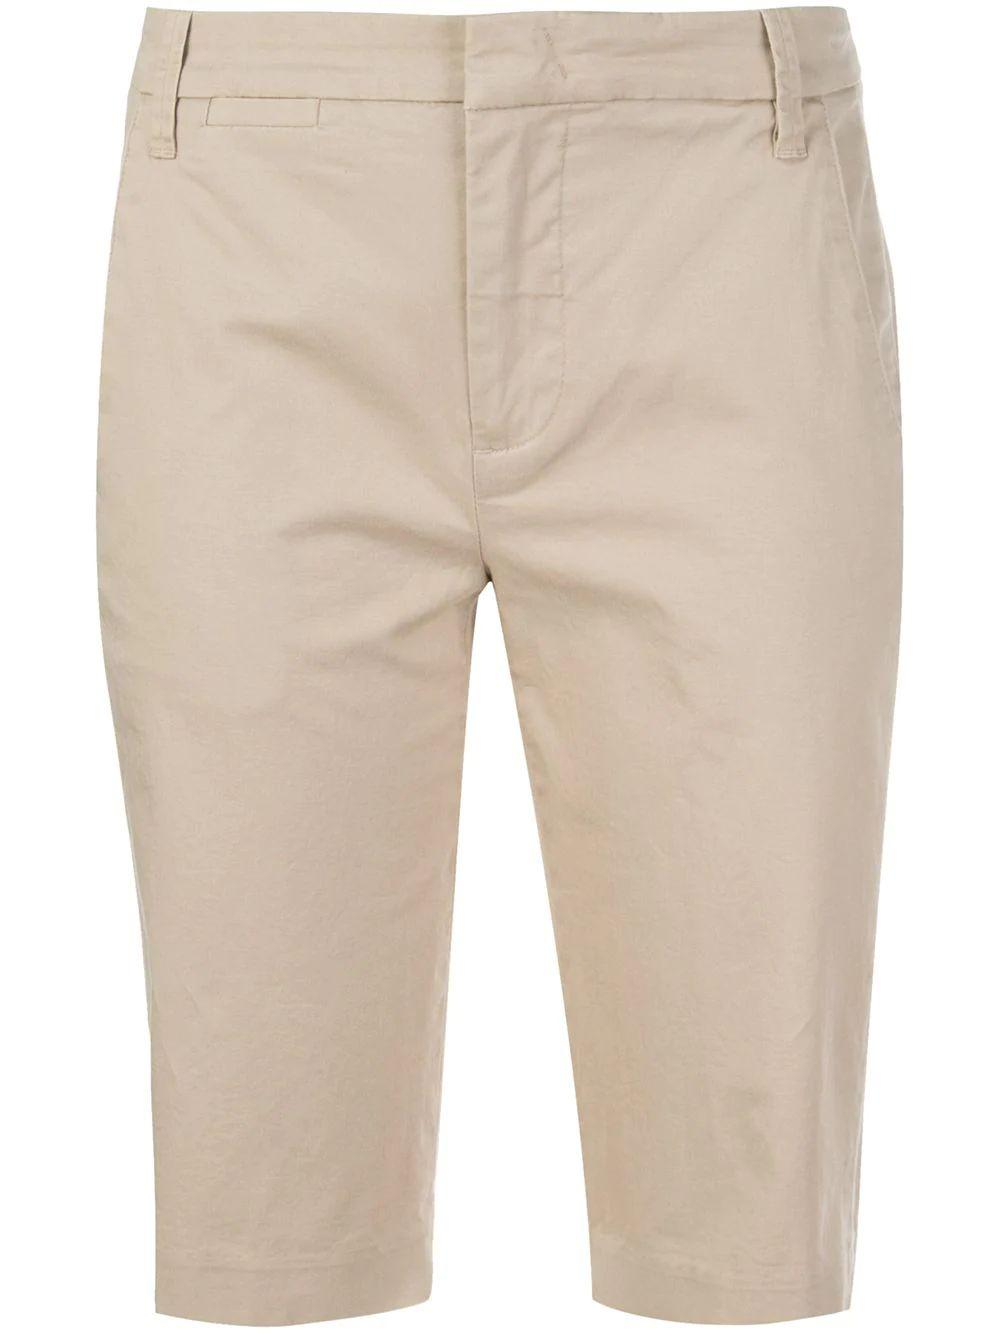 Coin Pocket Bermuda Short